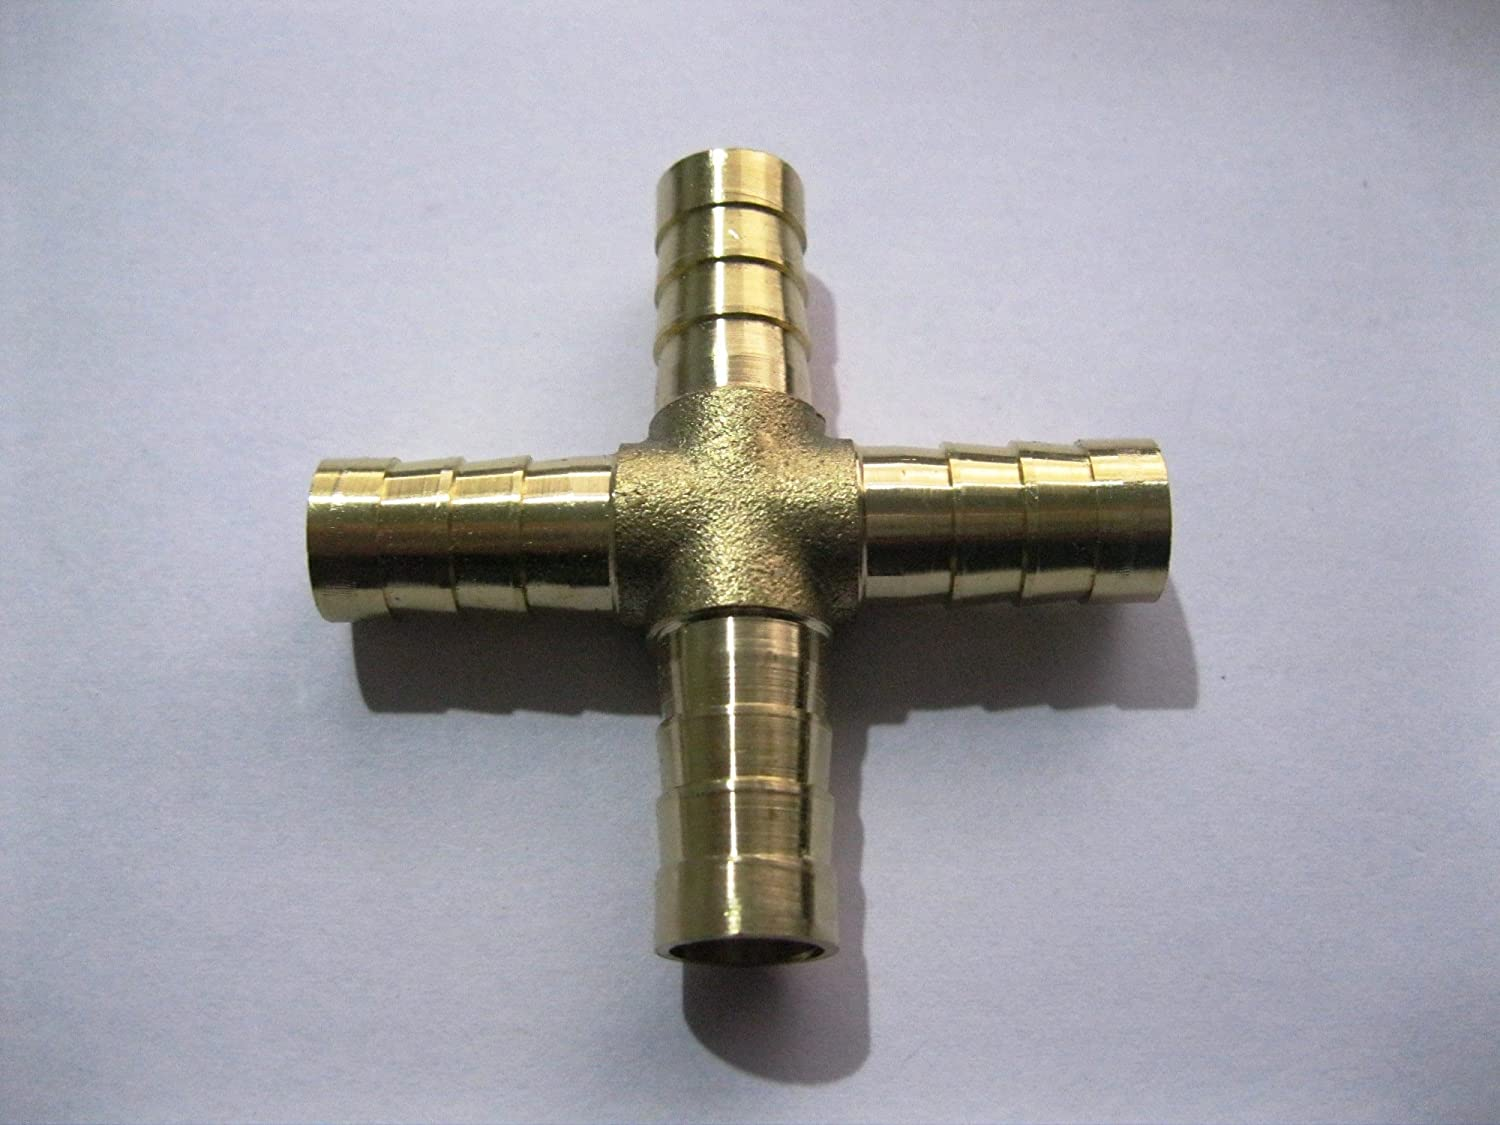 Y-shaped Tee 3//4 3//8 5//8 Hose Barb Tee T Union Fitting Intersection External Diameter sy66 2PCS Brass Hose Splicer Fitting 2, 1//4 Y-shape 6MM